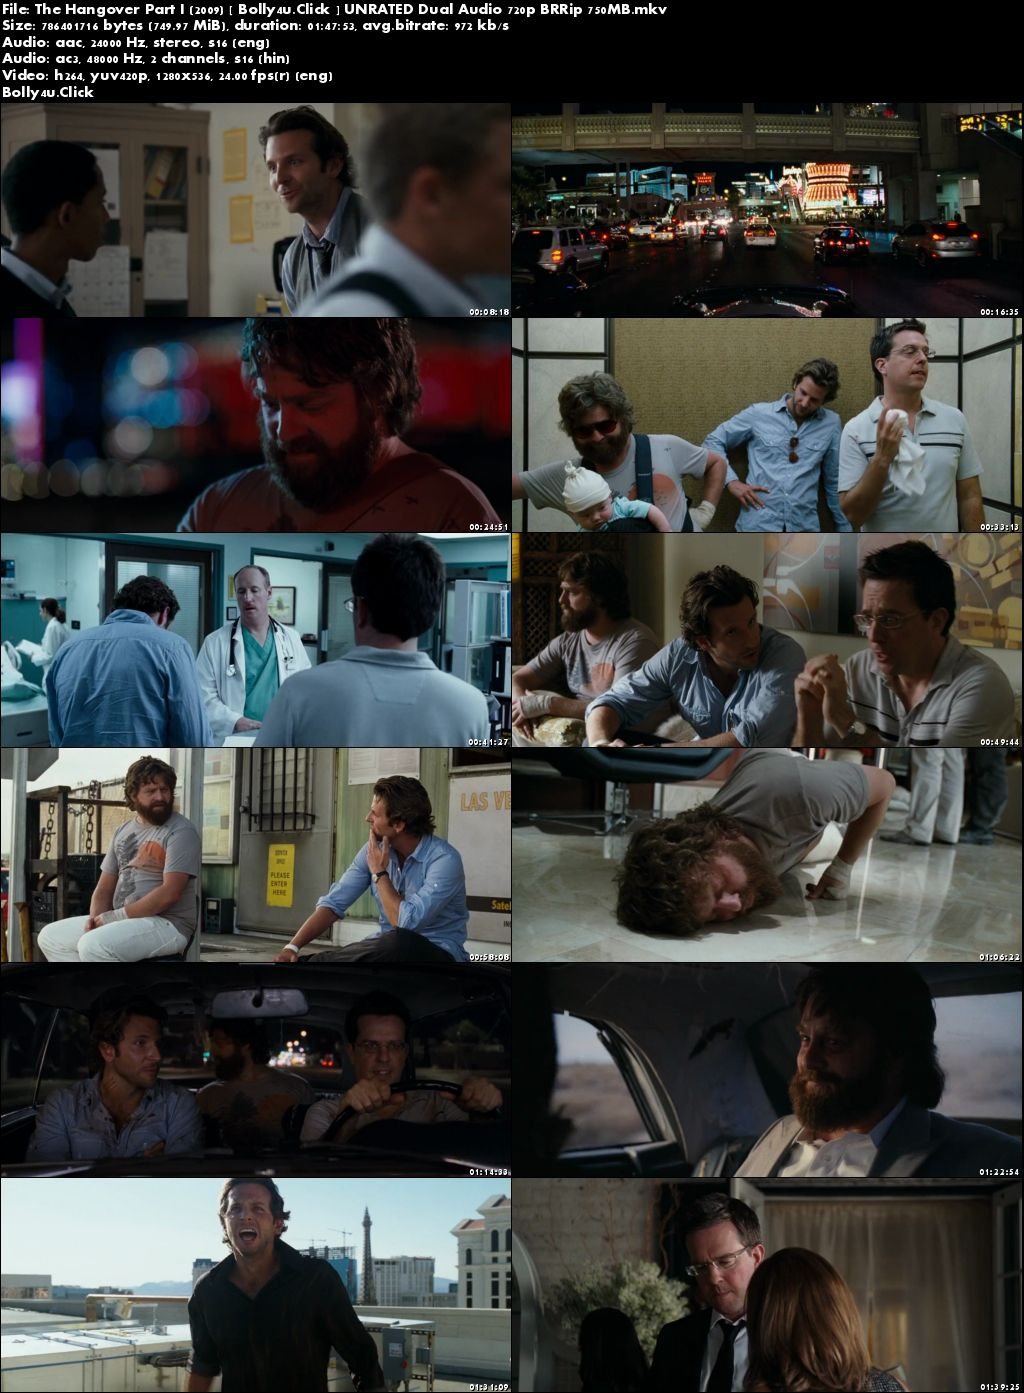 The Hangover Part I 2009 BRRip 750MB UNRATED Hindi Dual Audio 720p Download